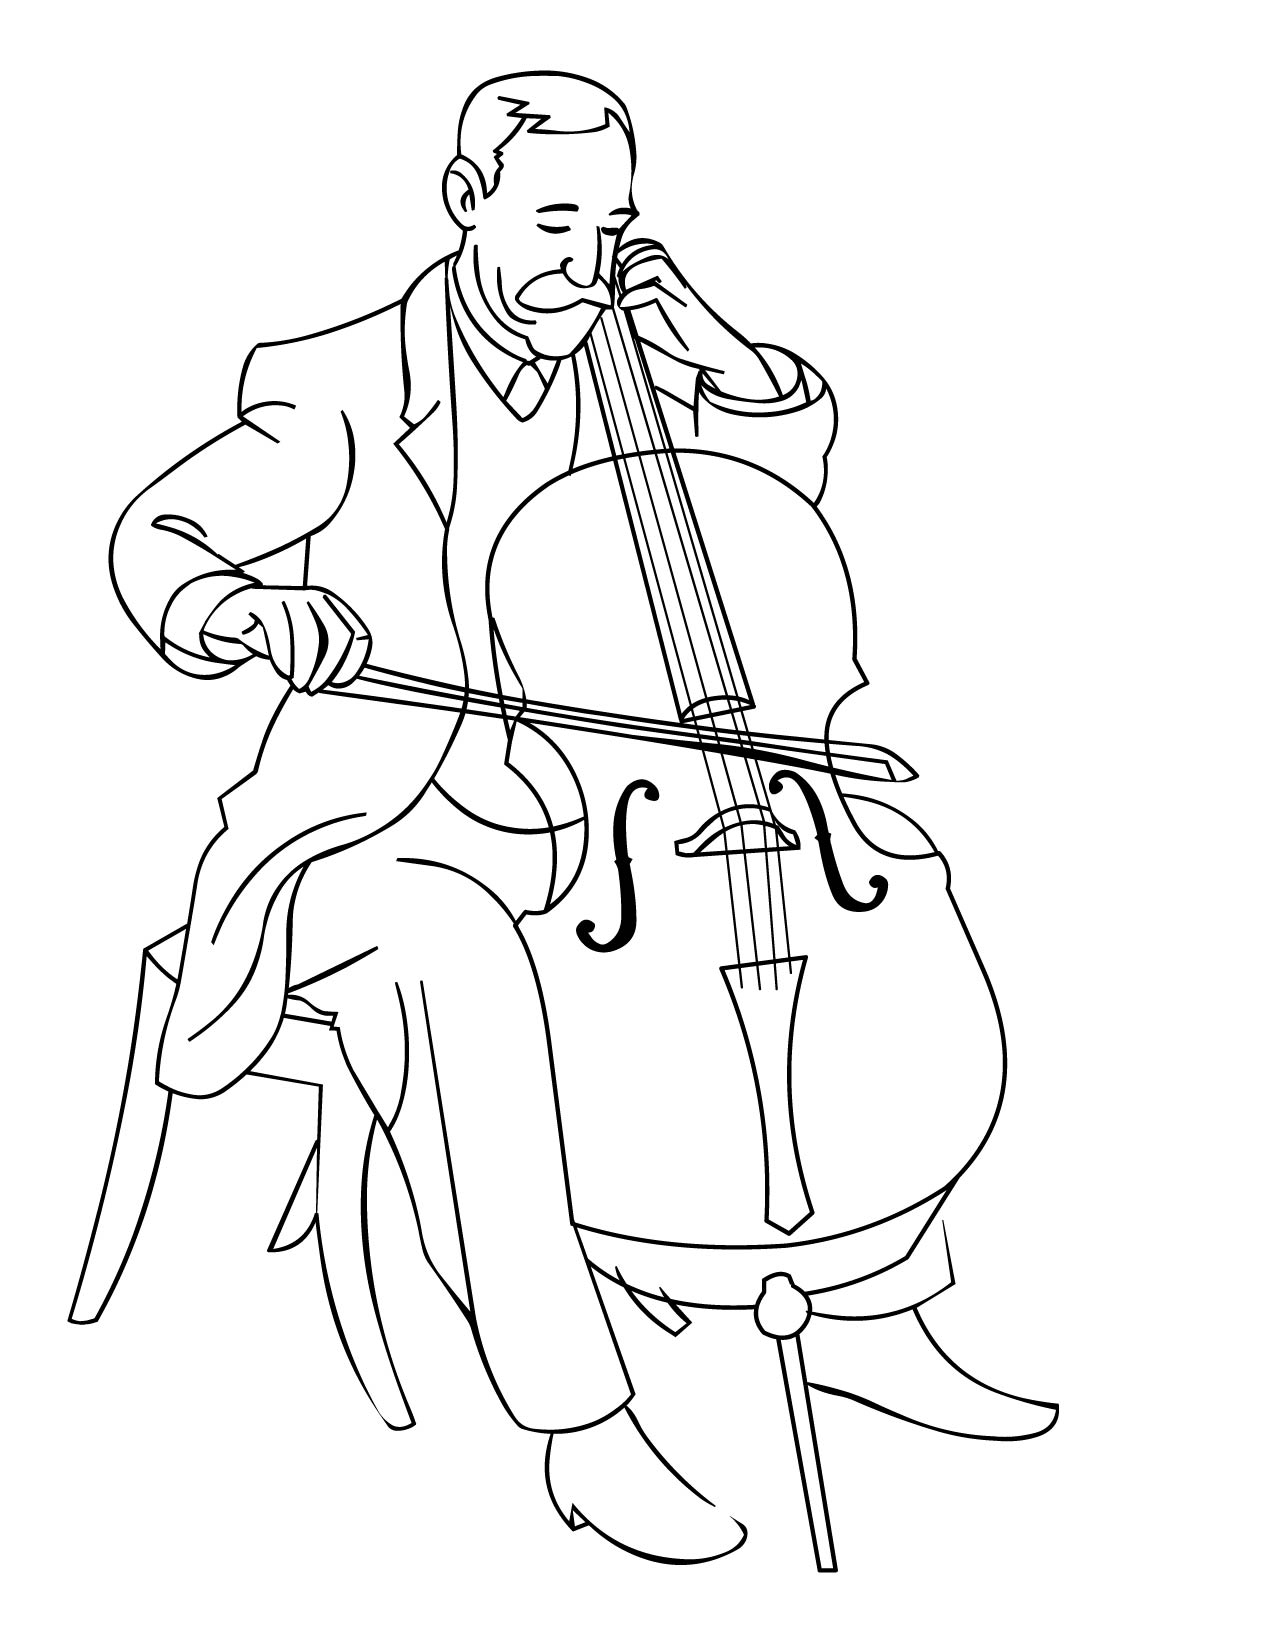 cello coloring page handipoints